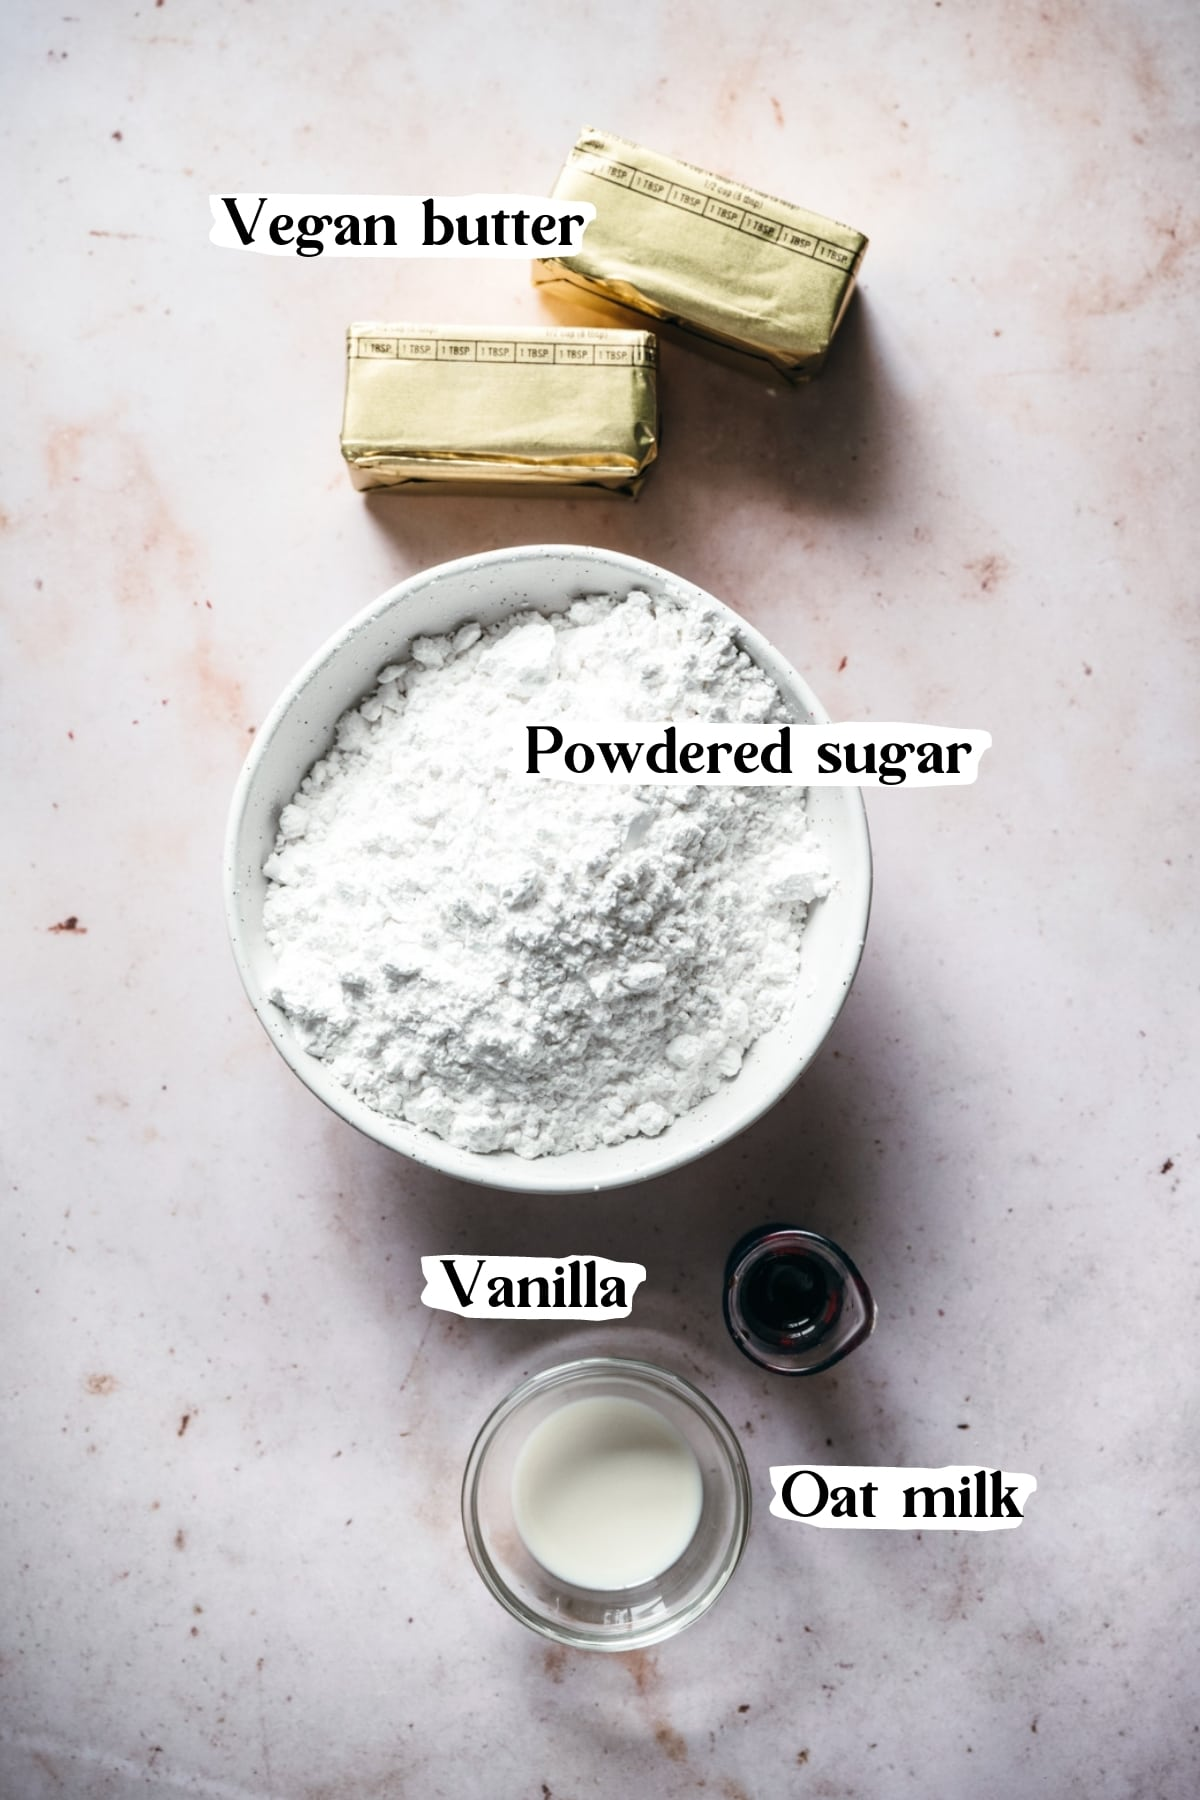 overhead view of ingredients to make vegan frosting, including vegan butter, powdered sugar, vanilla and milk.